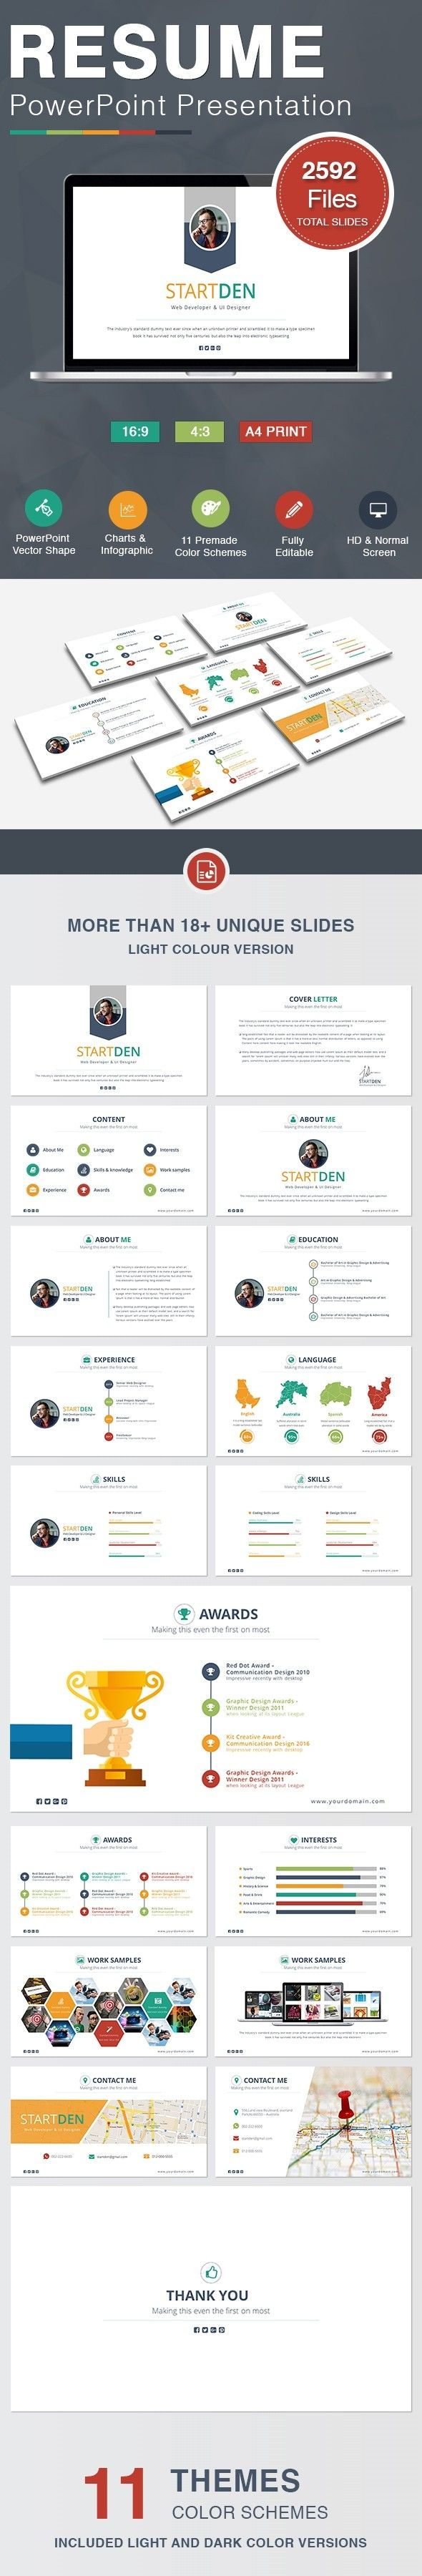 a4 best resume cover letter creative resume creative template